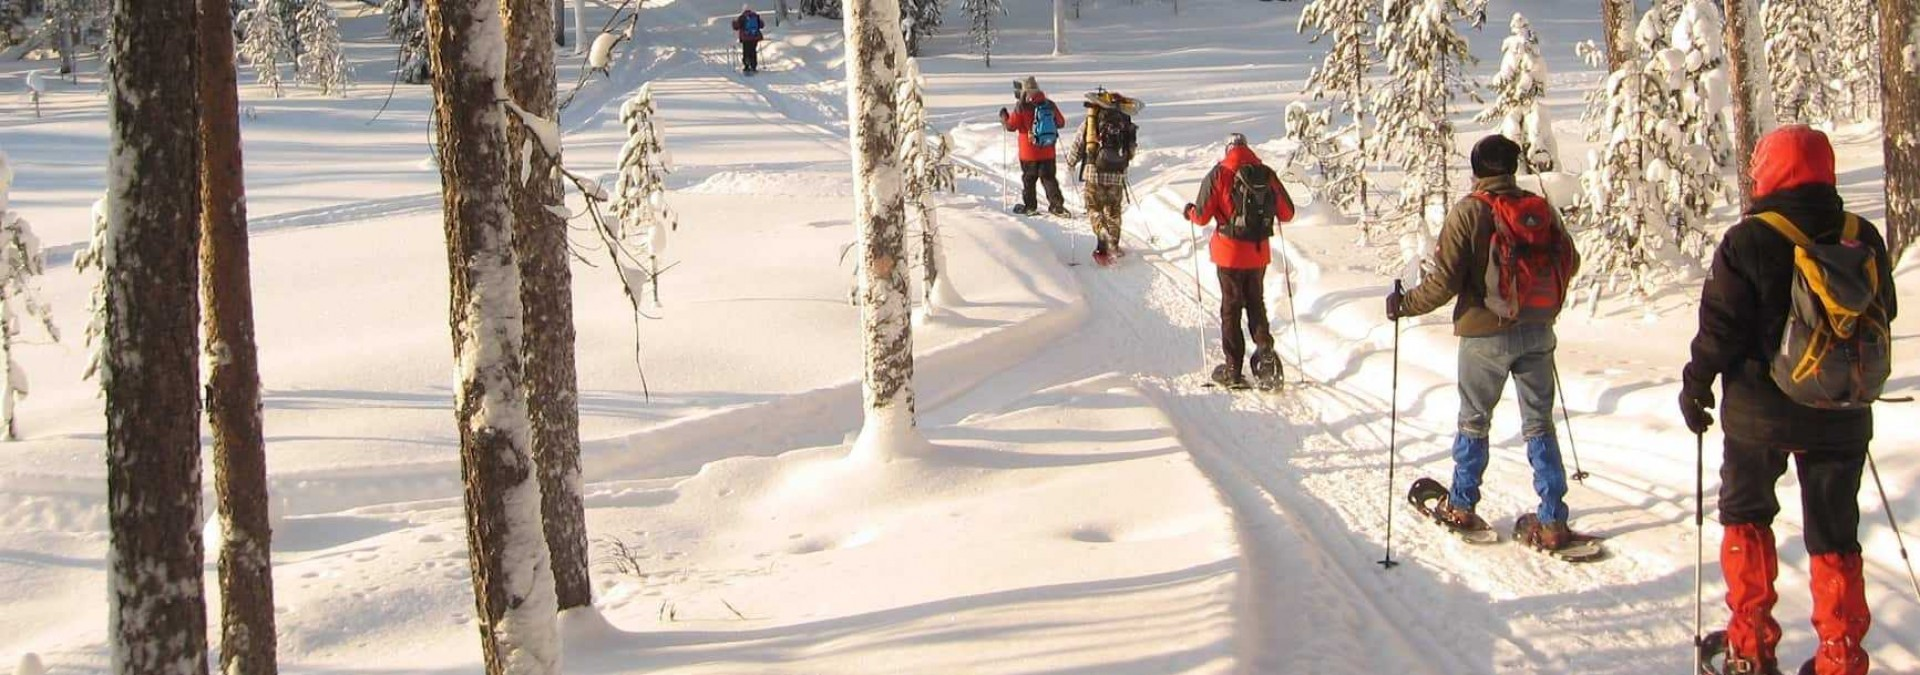 Snowshoeing in forest